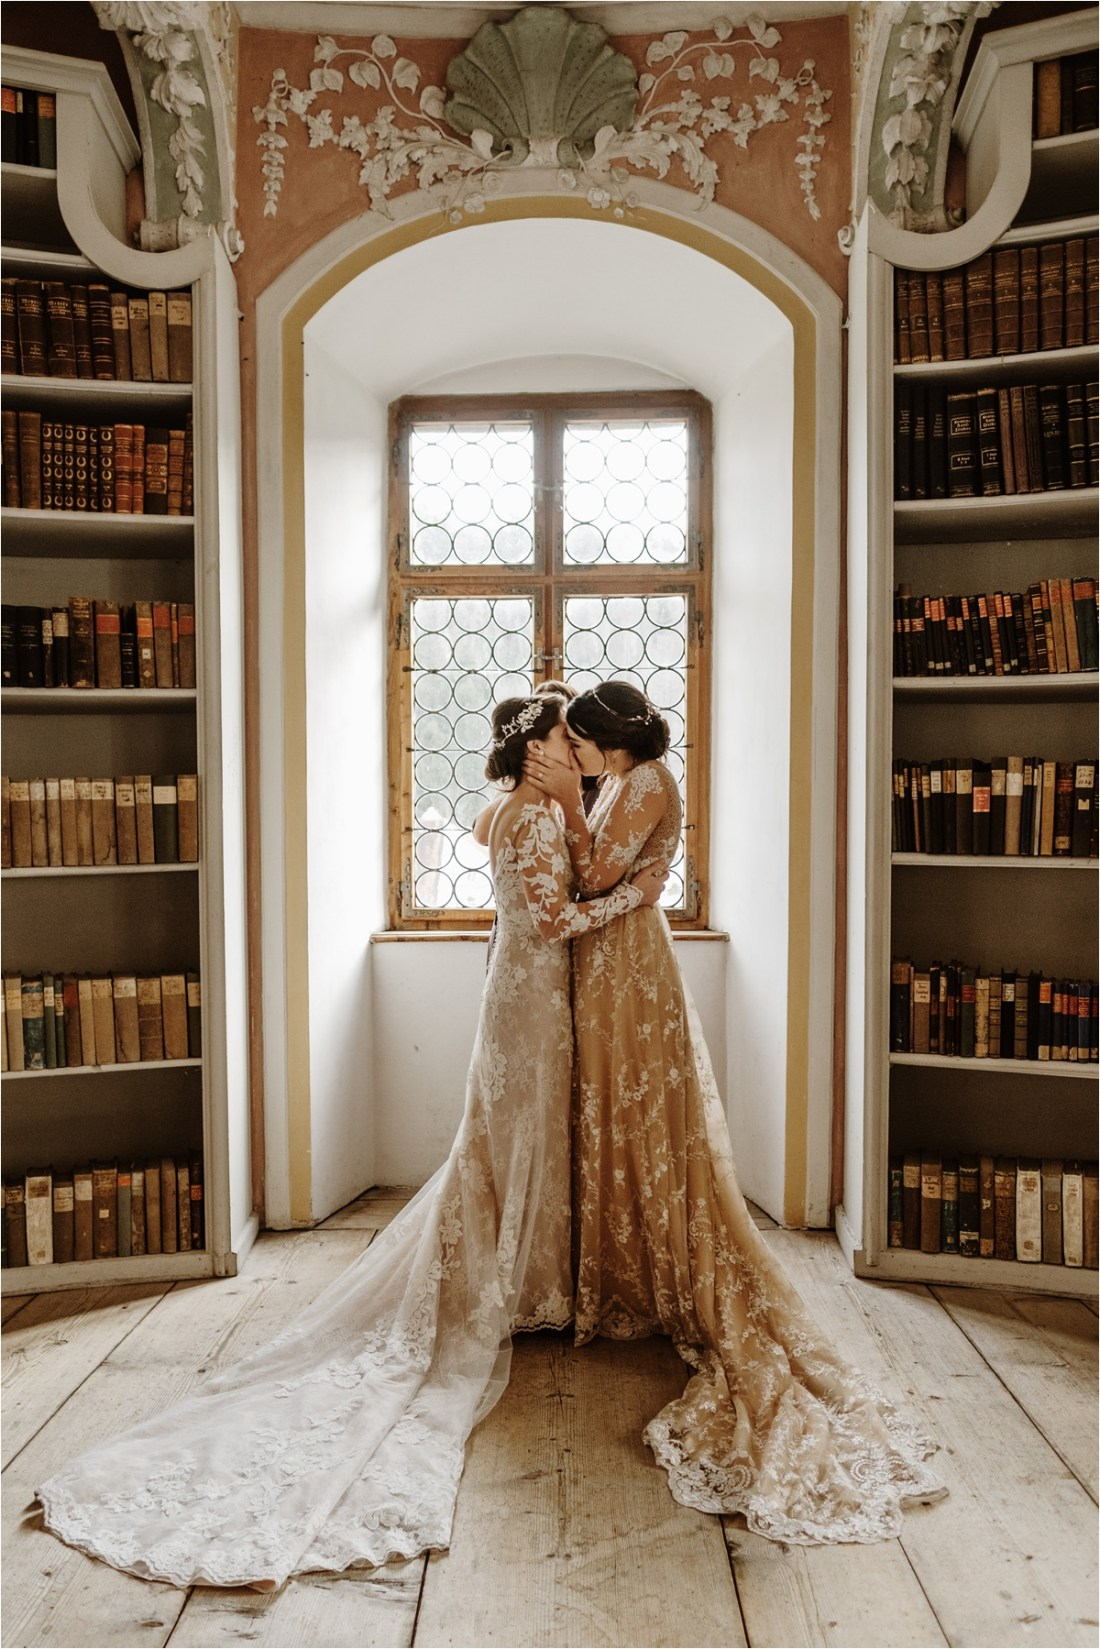 LGBT intimate wedding ceremony in a library in Germany. Photo by Wild Connections Photography